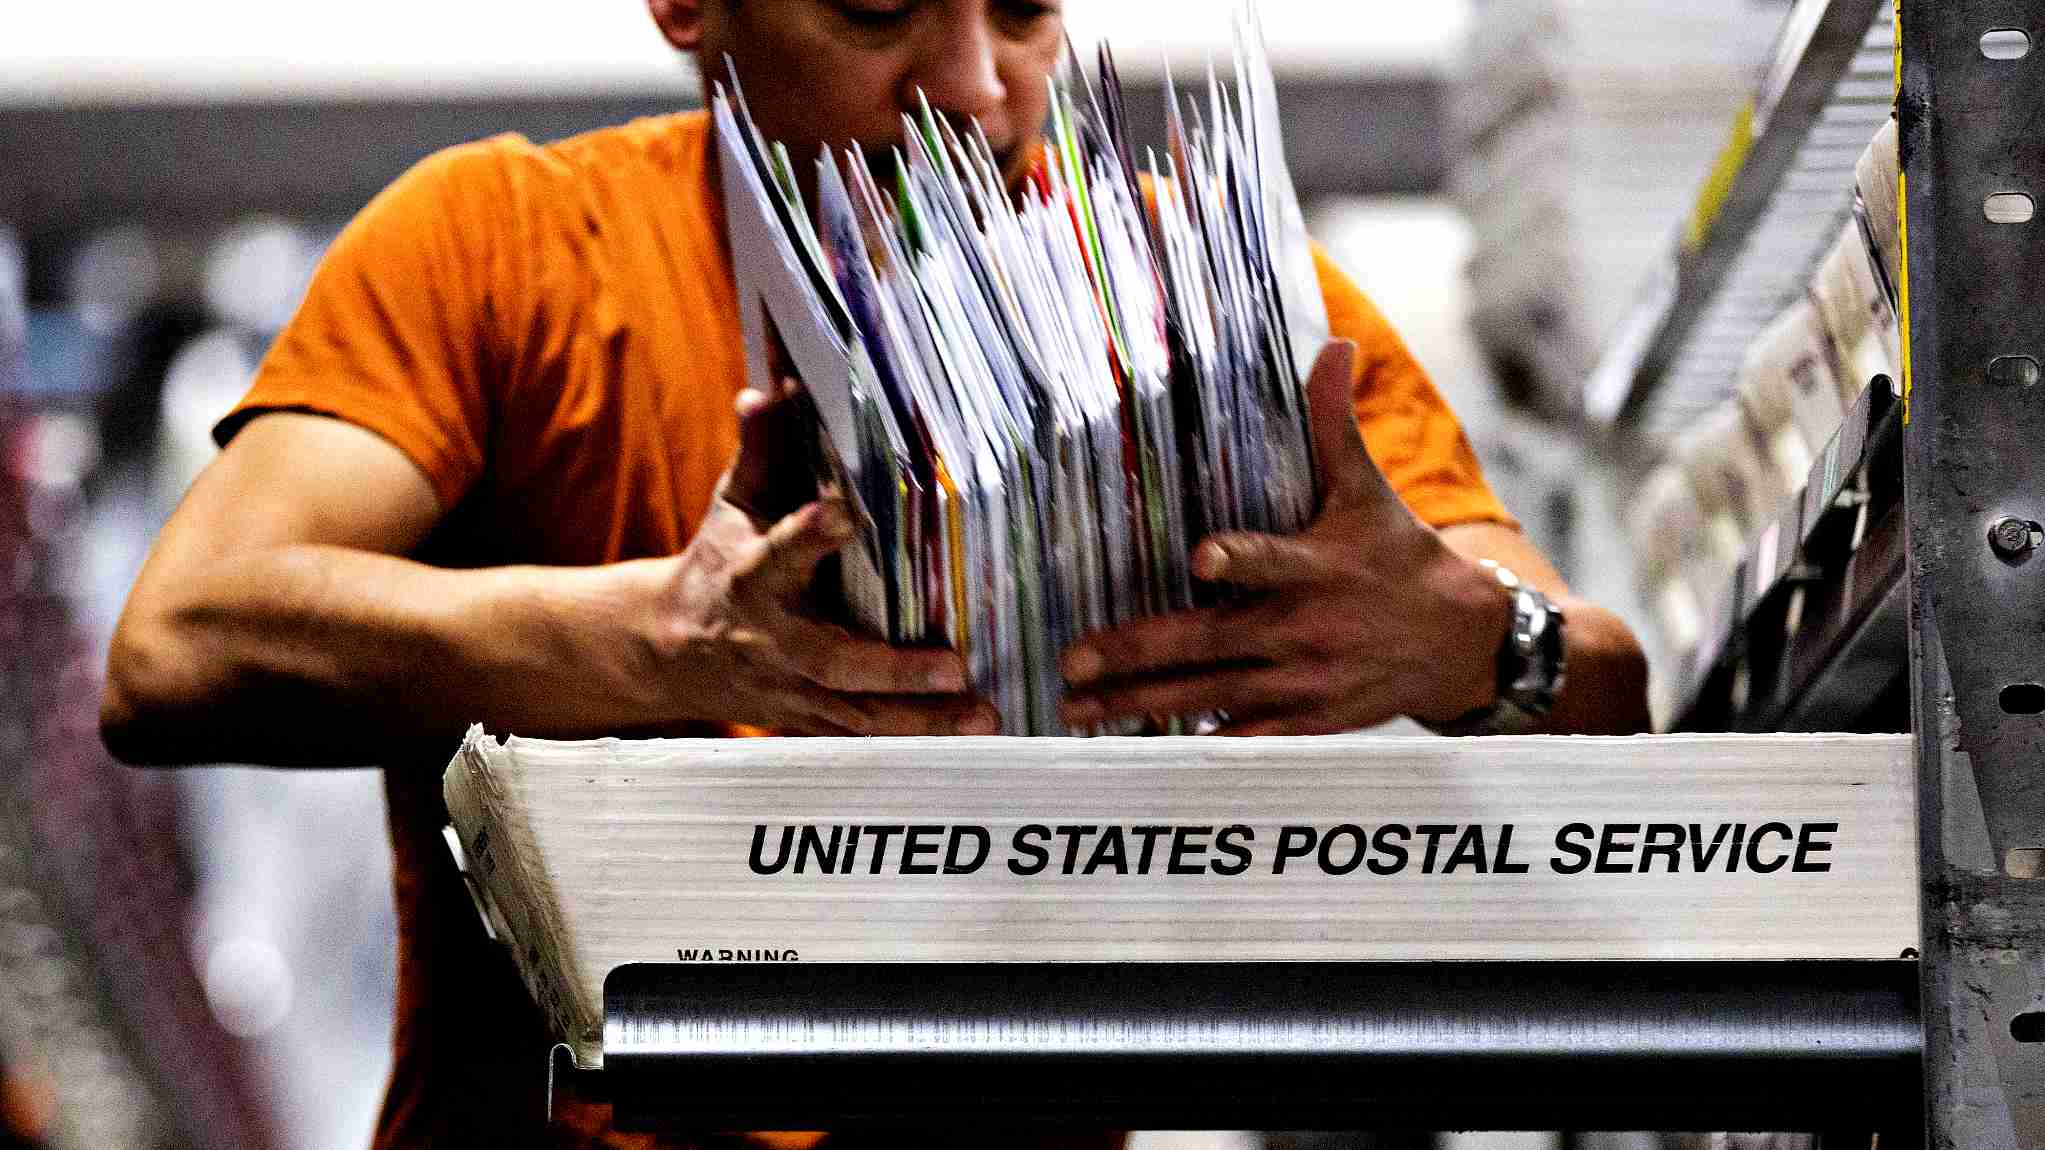 What is the Universal Postal Union?